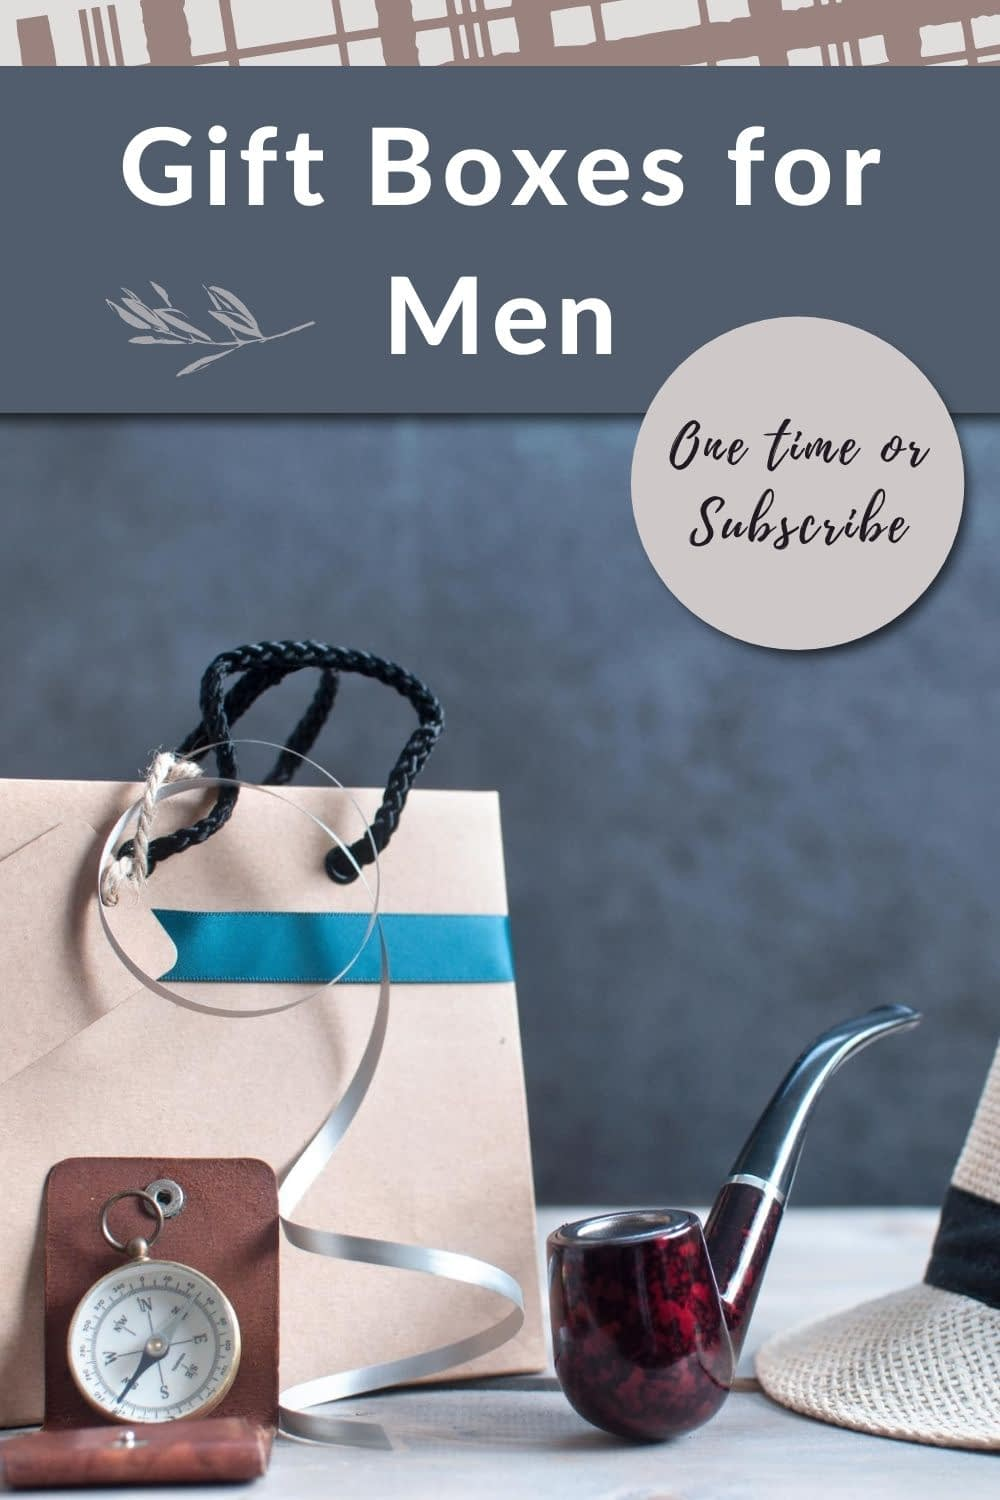 Men love gifts too! Spoil the men in your life with a one-time gift box or renewable subscription!